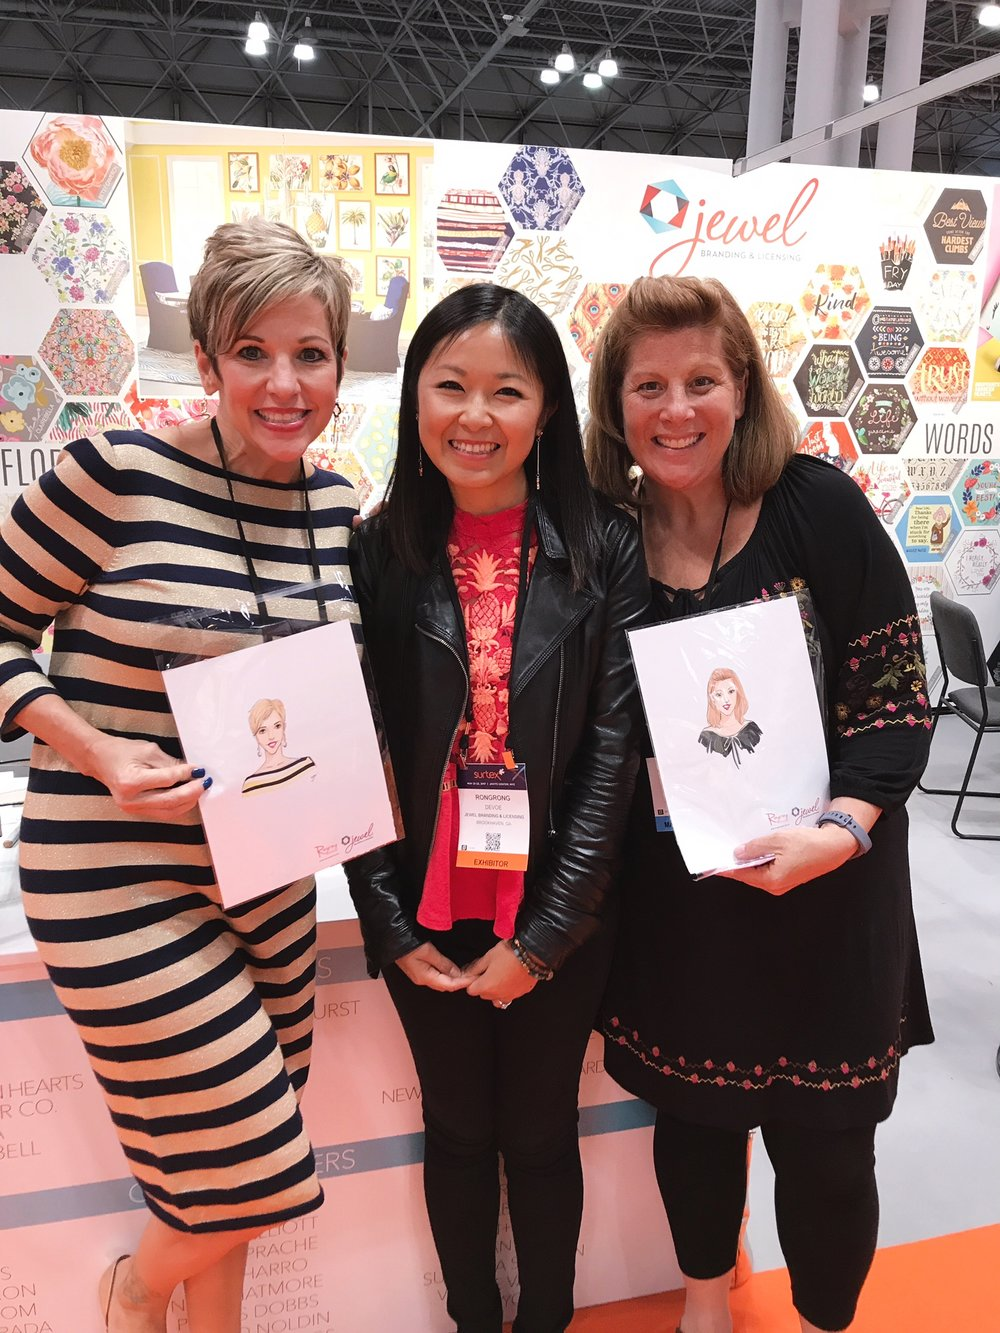 Licensing Artist Rongrong DeVoe live sketching at Jewel Branding booth at Surtex 2017